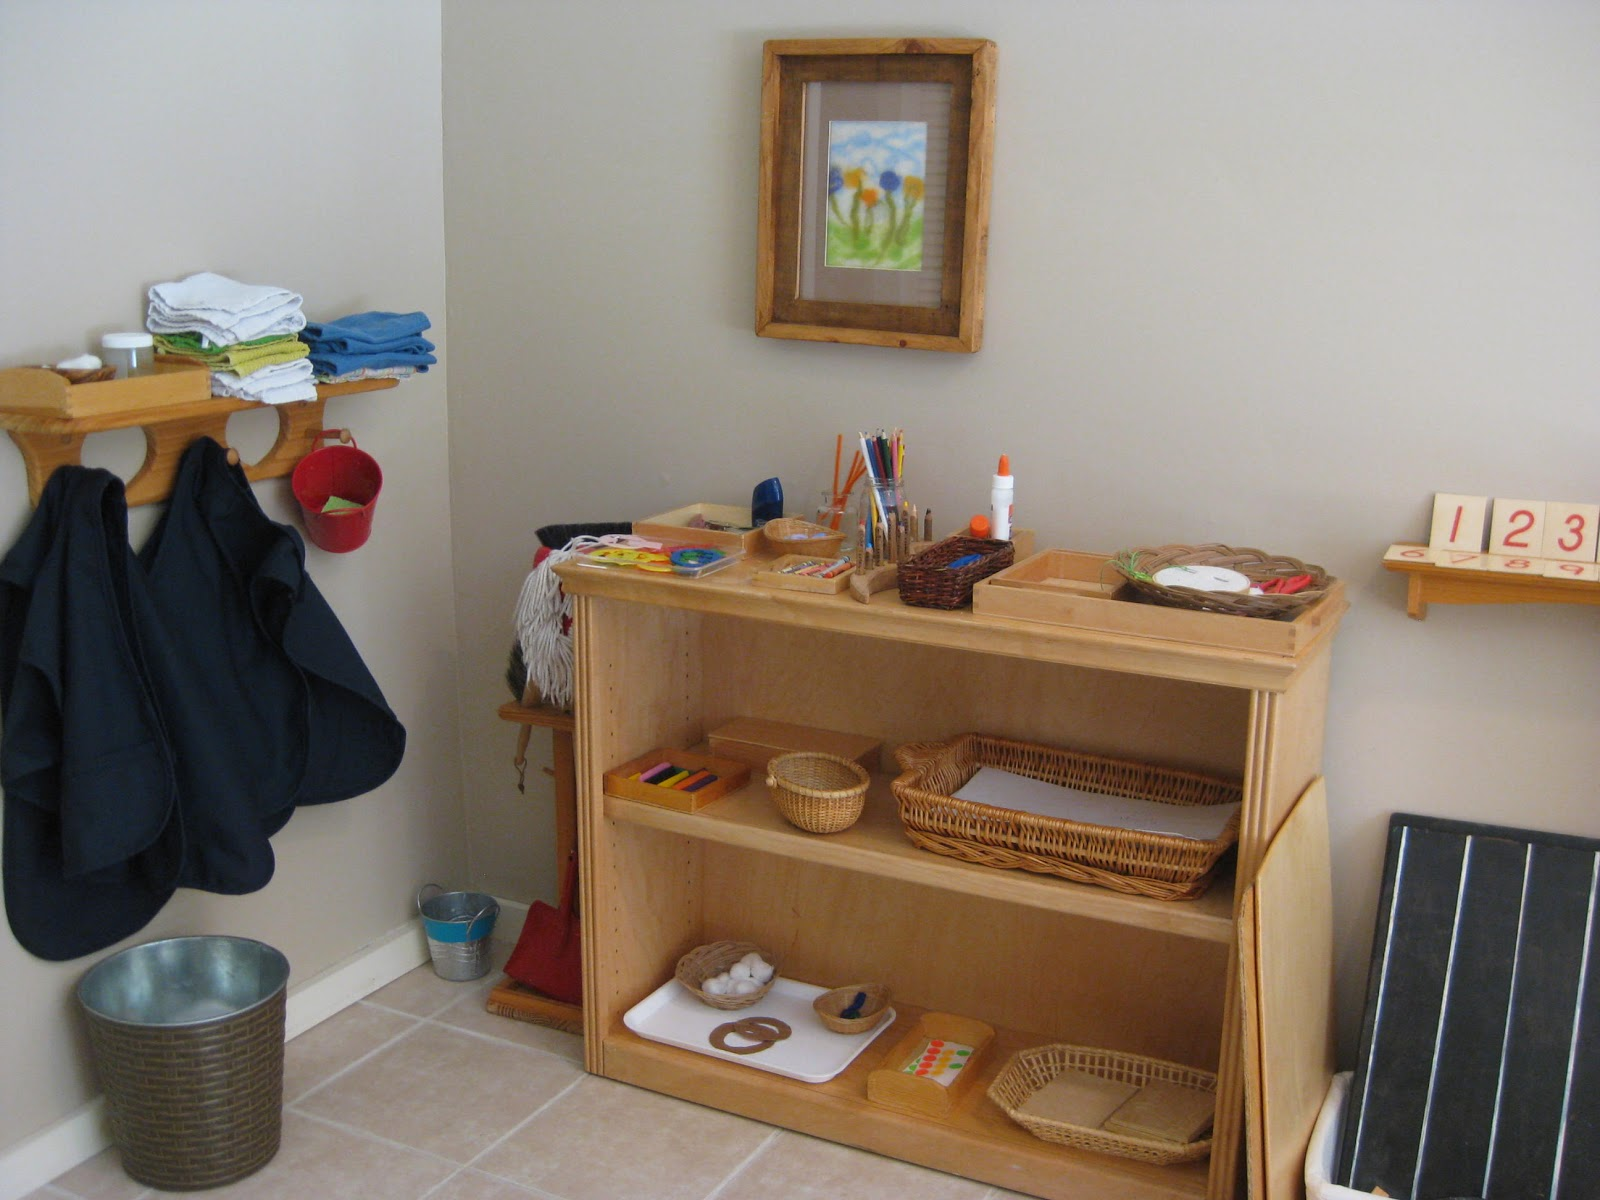 The wonder years an in home childcare room for Daycare kitchen ideas